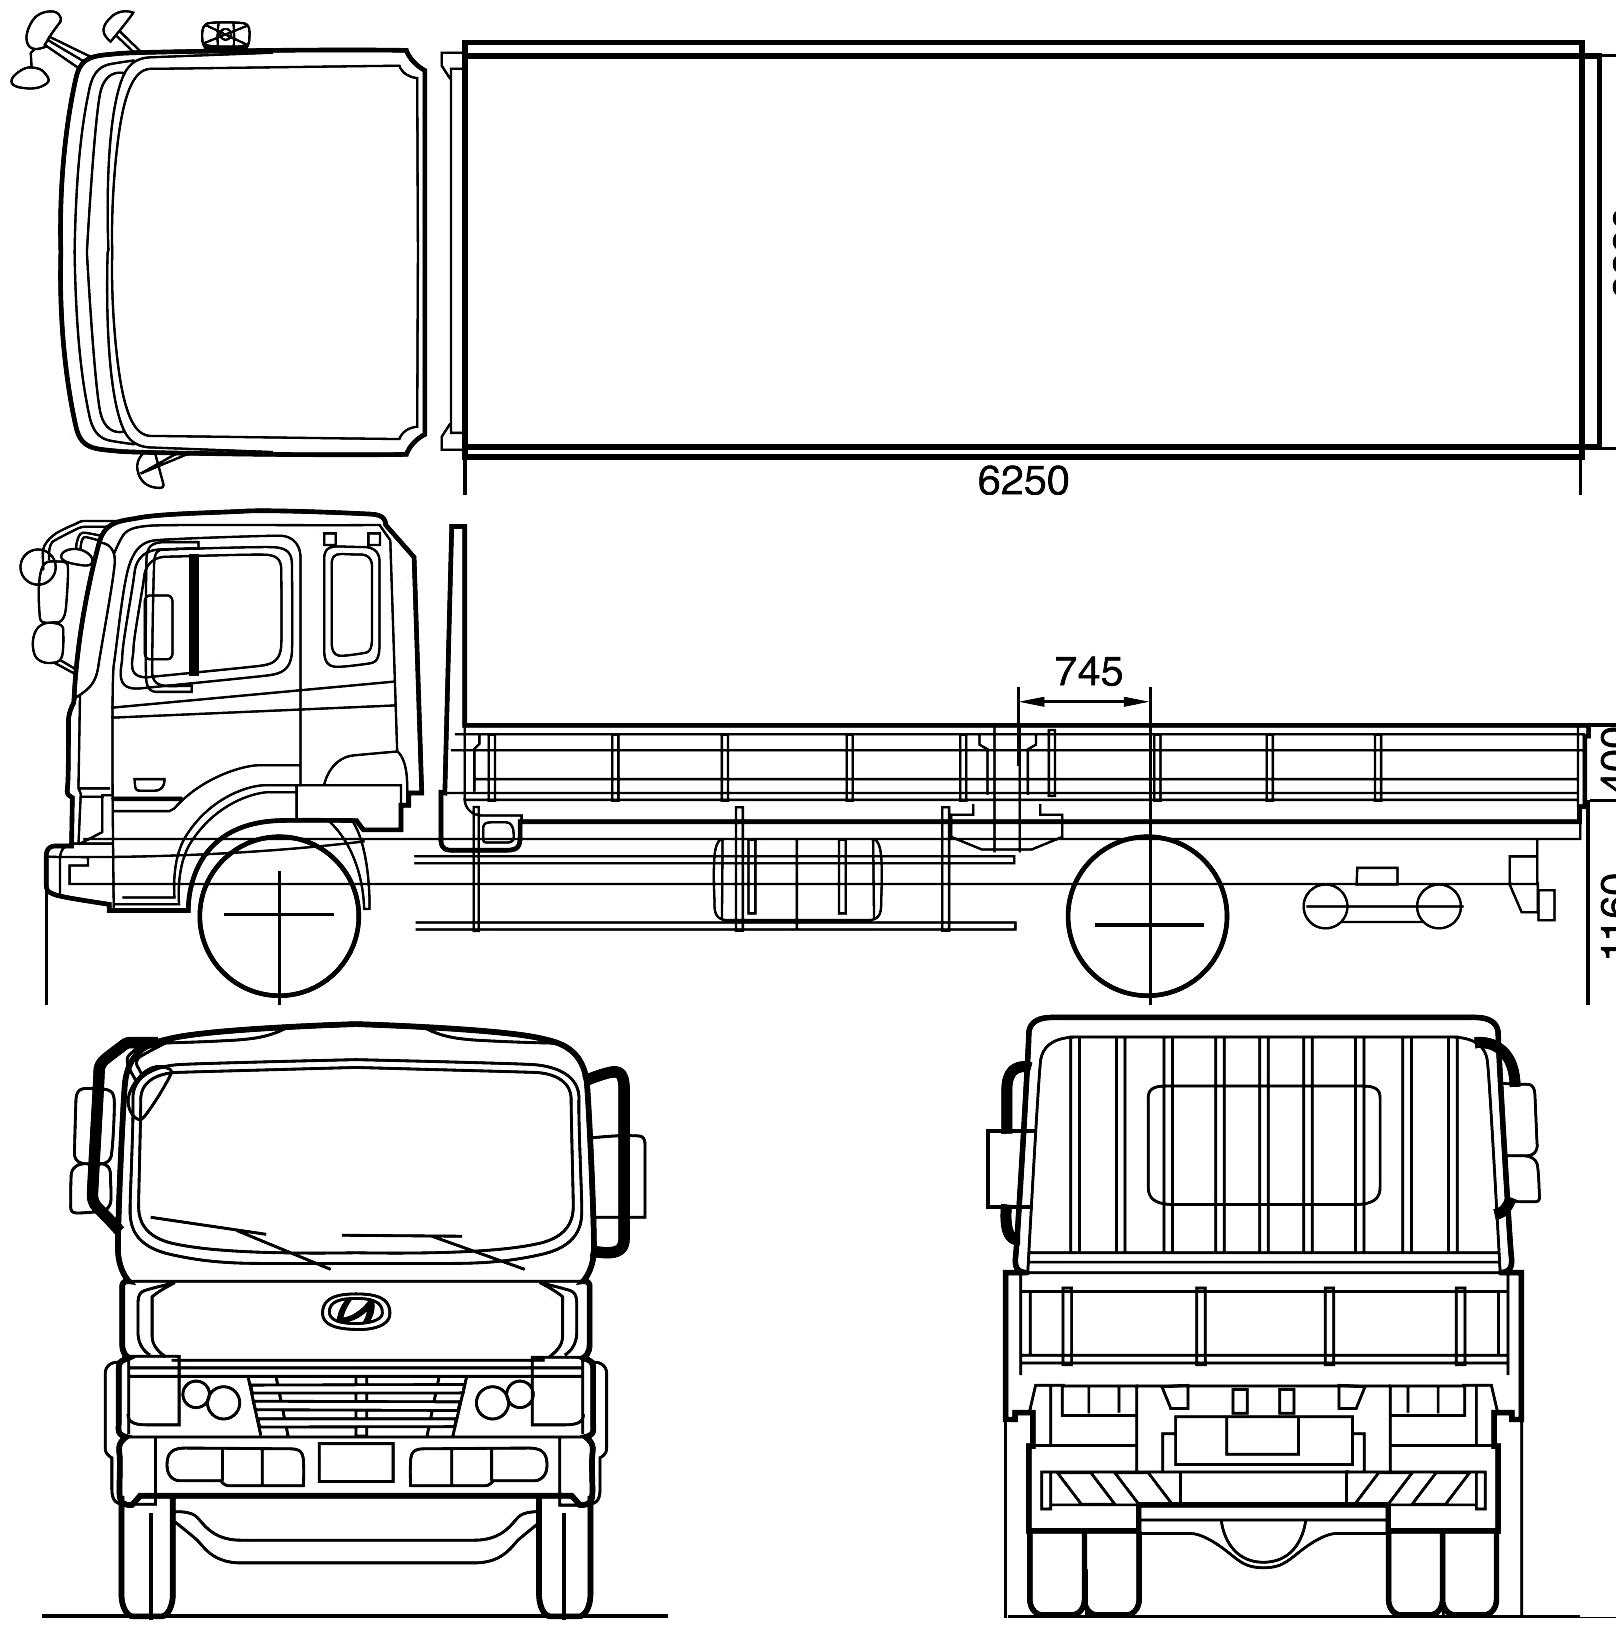 T17488487 Show picture diagram vacuum hoses 1984 also 1977 Chevy Trucks additionally P30 Chevy Gas Gauge Wiring further Wiring Diagram 1973 1976 Chevy Pickup likewise Chevrolet V8 Trucks 1981 1987. on chevy p30 step van